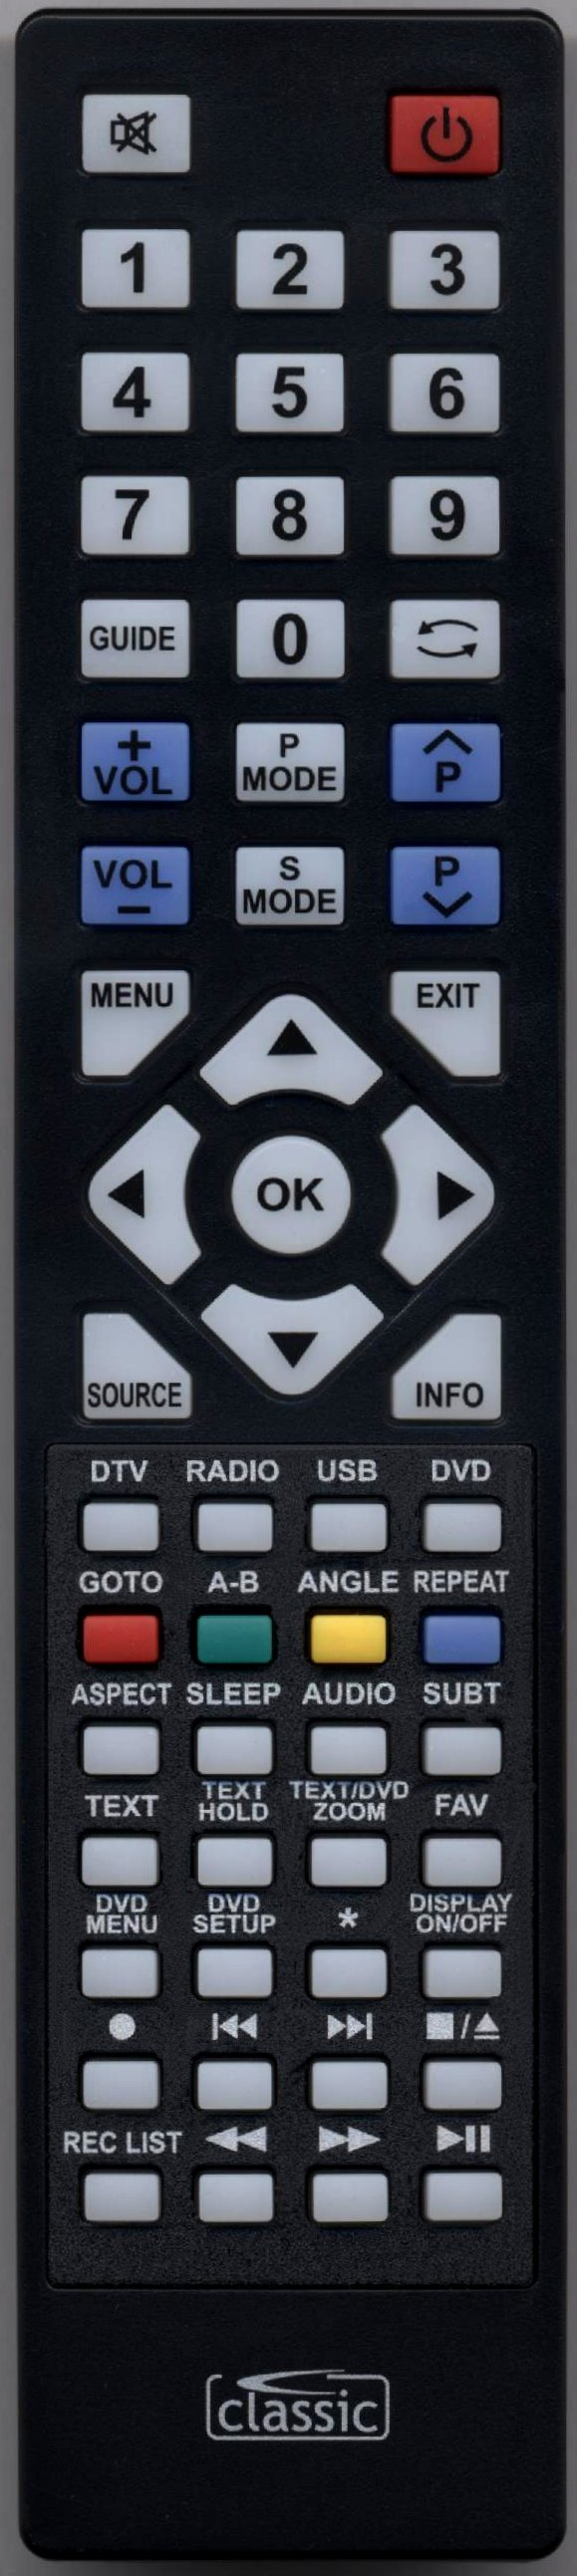 BLAUPUNKT 32/148O-GB-11B-EGDP-UK Remote Control Alternative